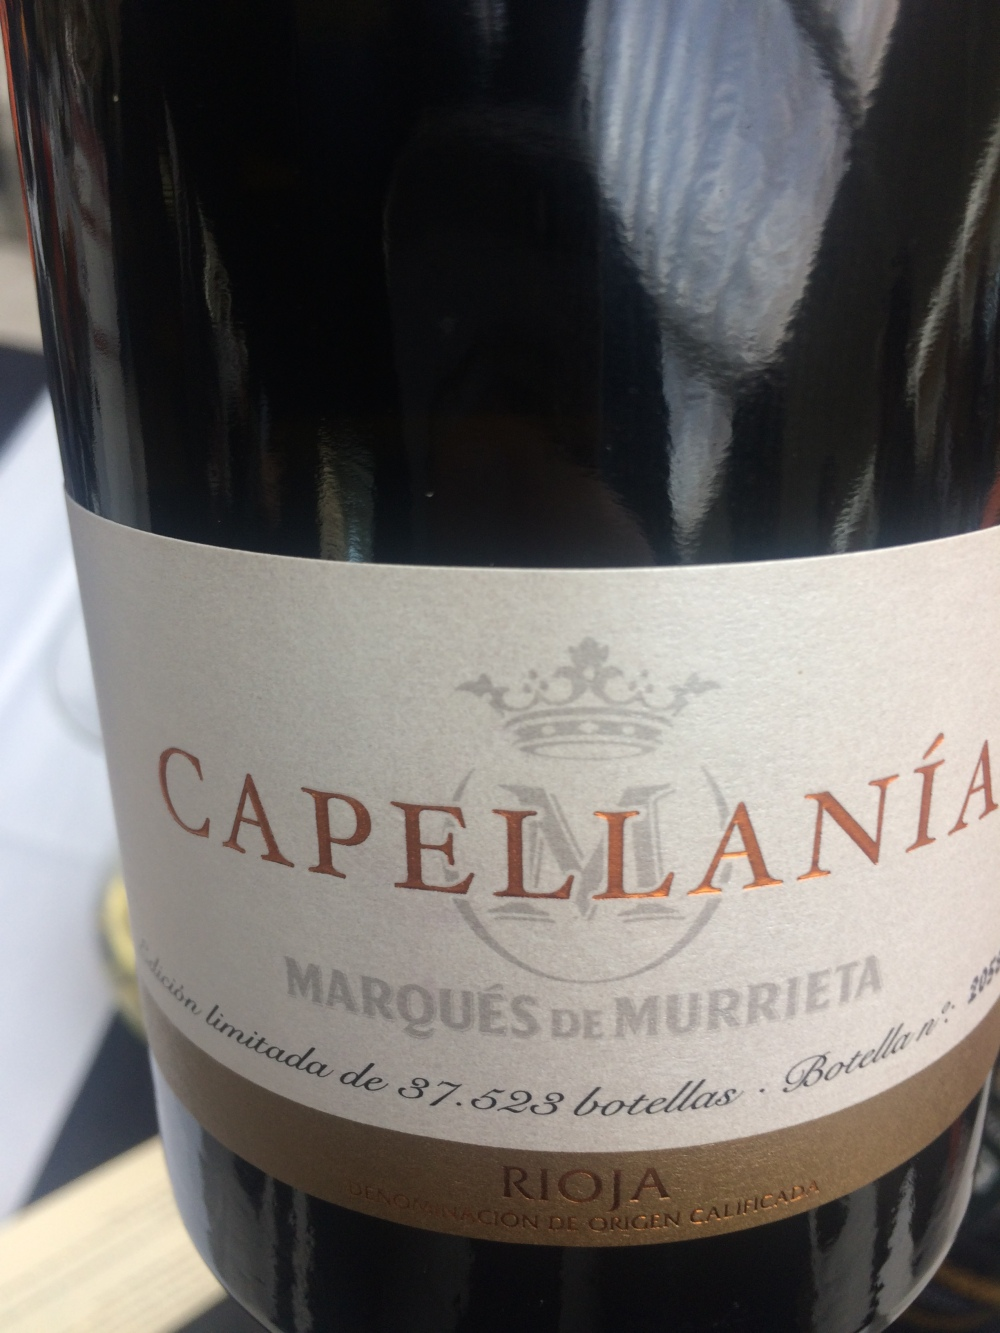 Capellanía 2012 - Marques de Murrieta